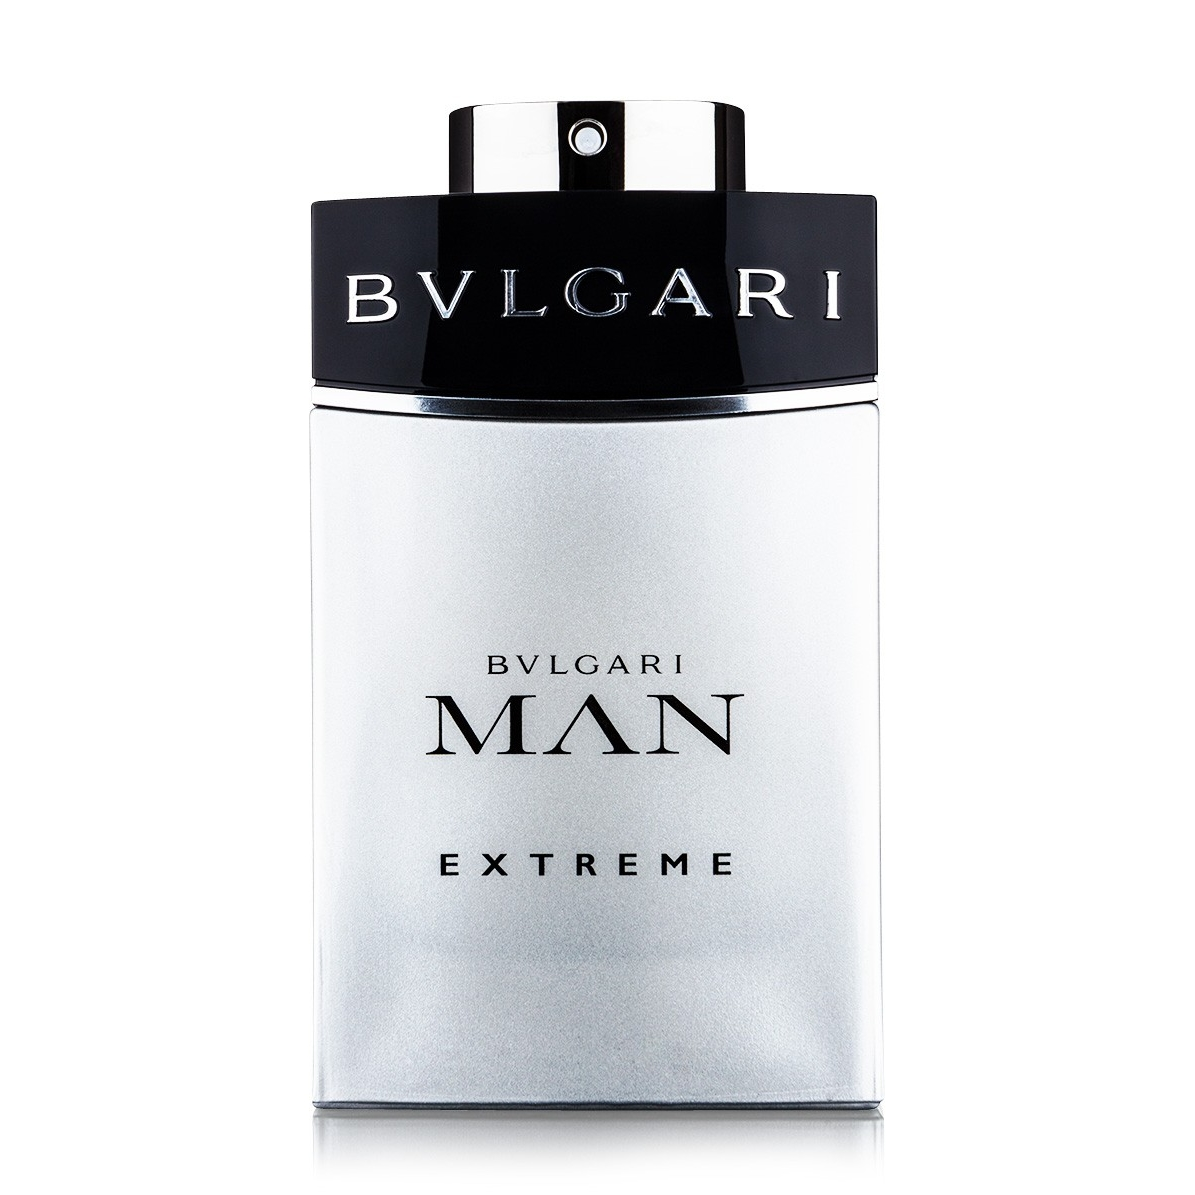 Bulgari Man Extreme eau de toilette spray uomo 60 ml